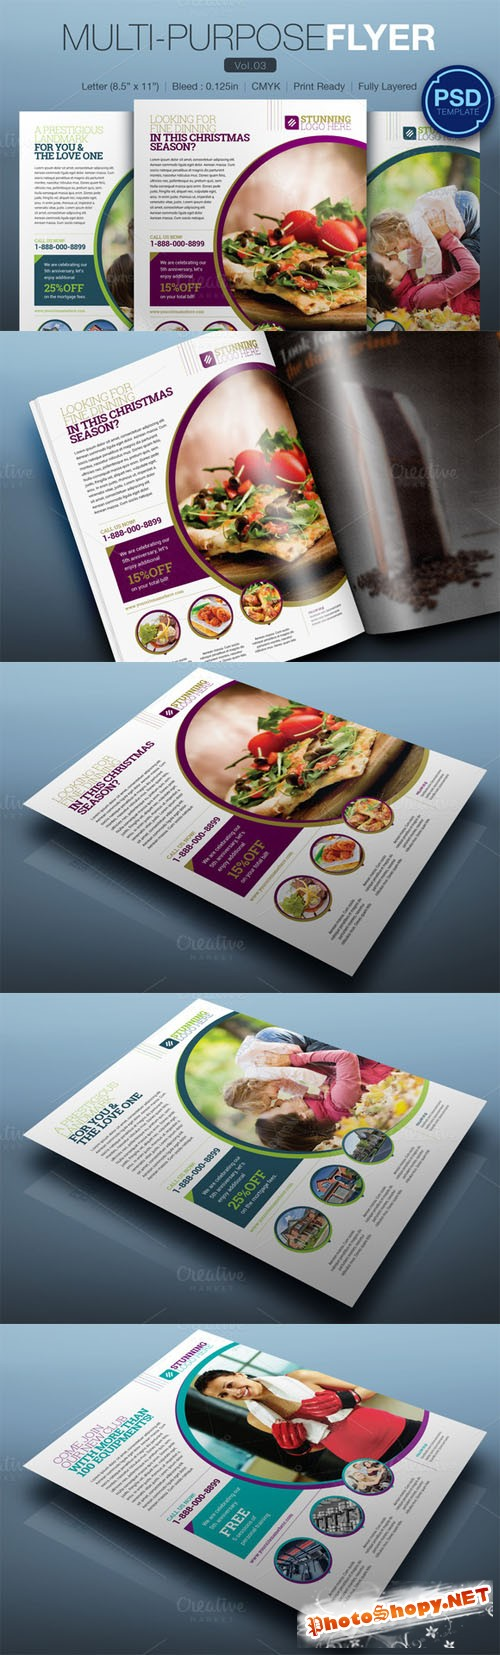 Multipurpose Flyer Vol.03 - Creativemarket 125841